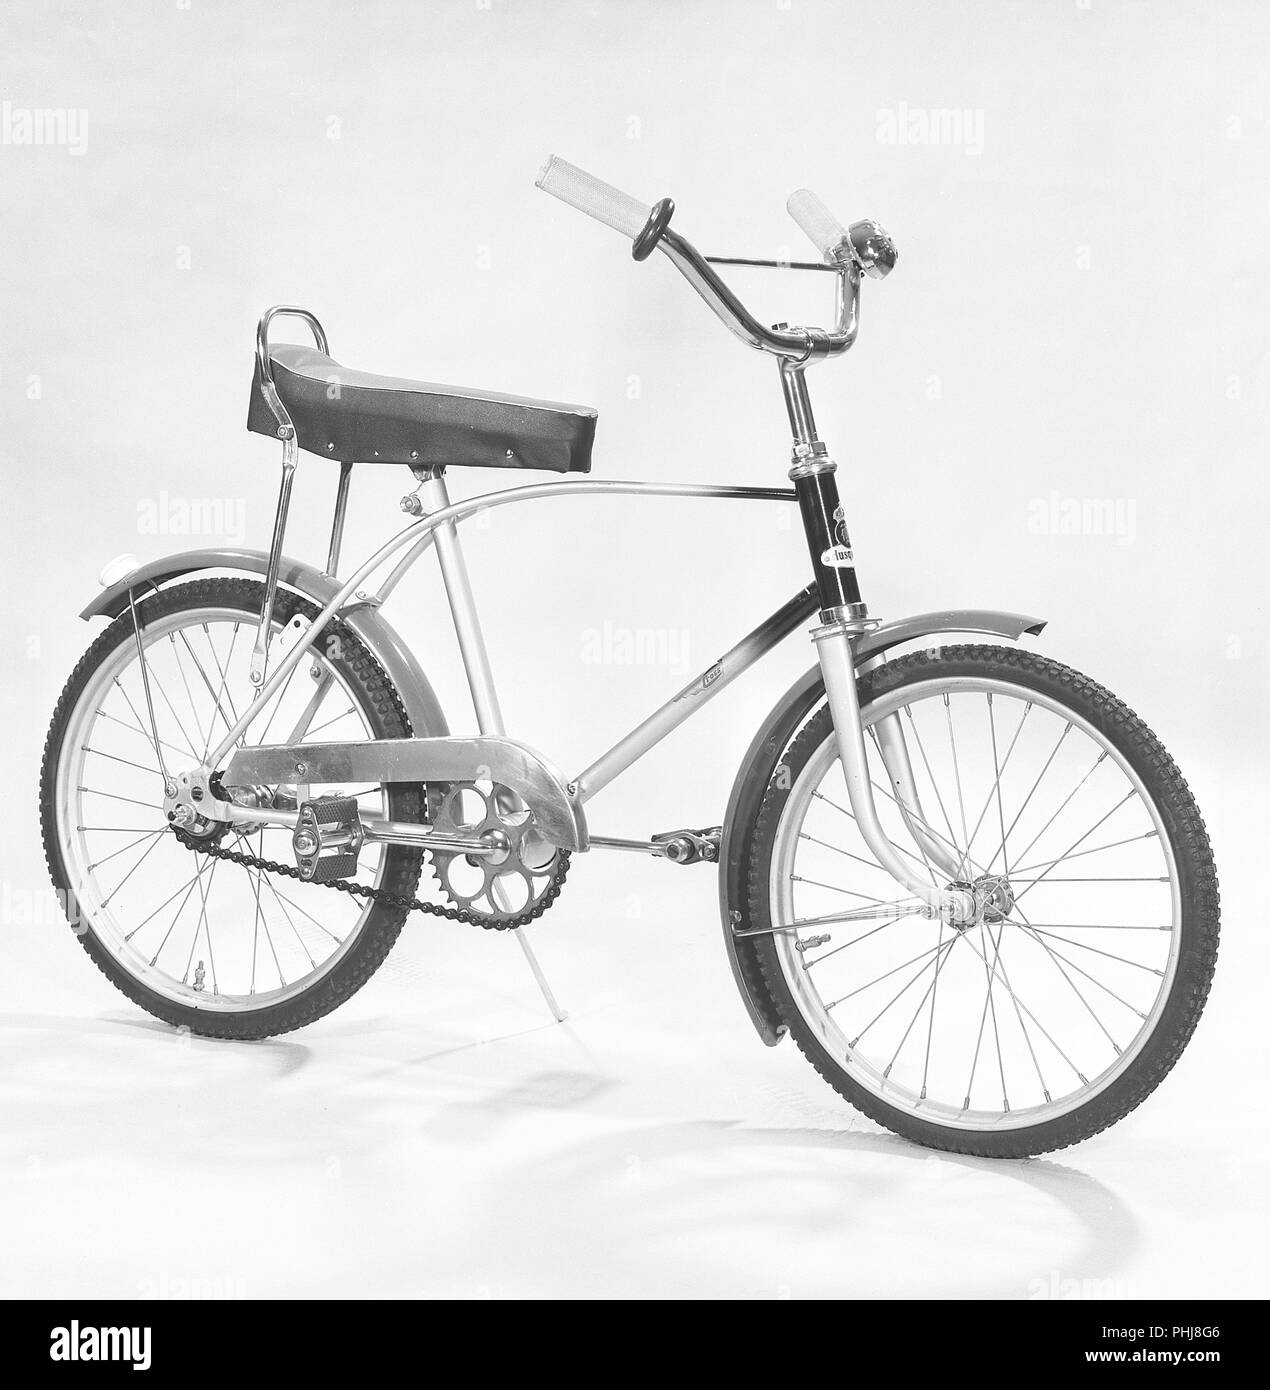 1950s bicycle. A childrens bicycle model Cross from manufacturer Husqvarna. A bicycle model that was considered the coolest thing around for a child of the 1950s with high handlebars and a loaf seat. Sweden 1950s  Ref BV40-12 - Stock Image